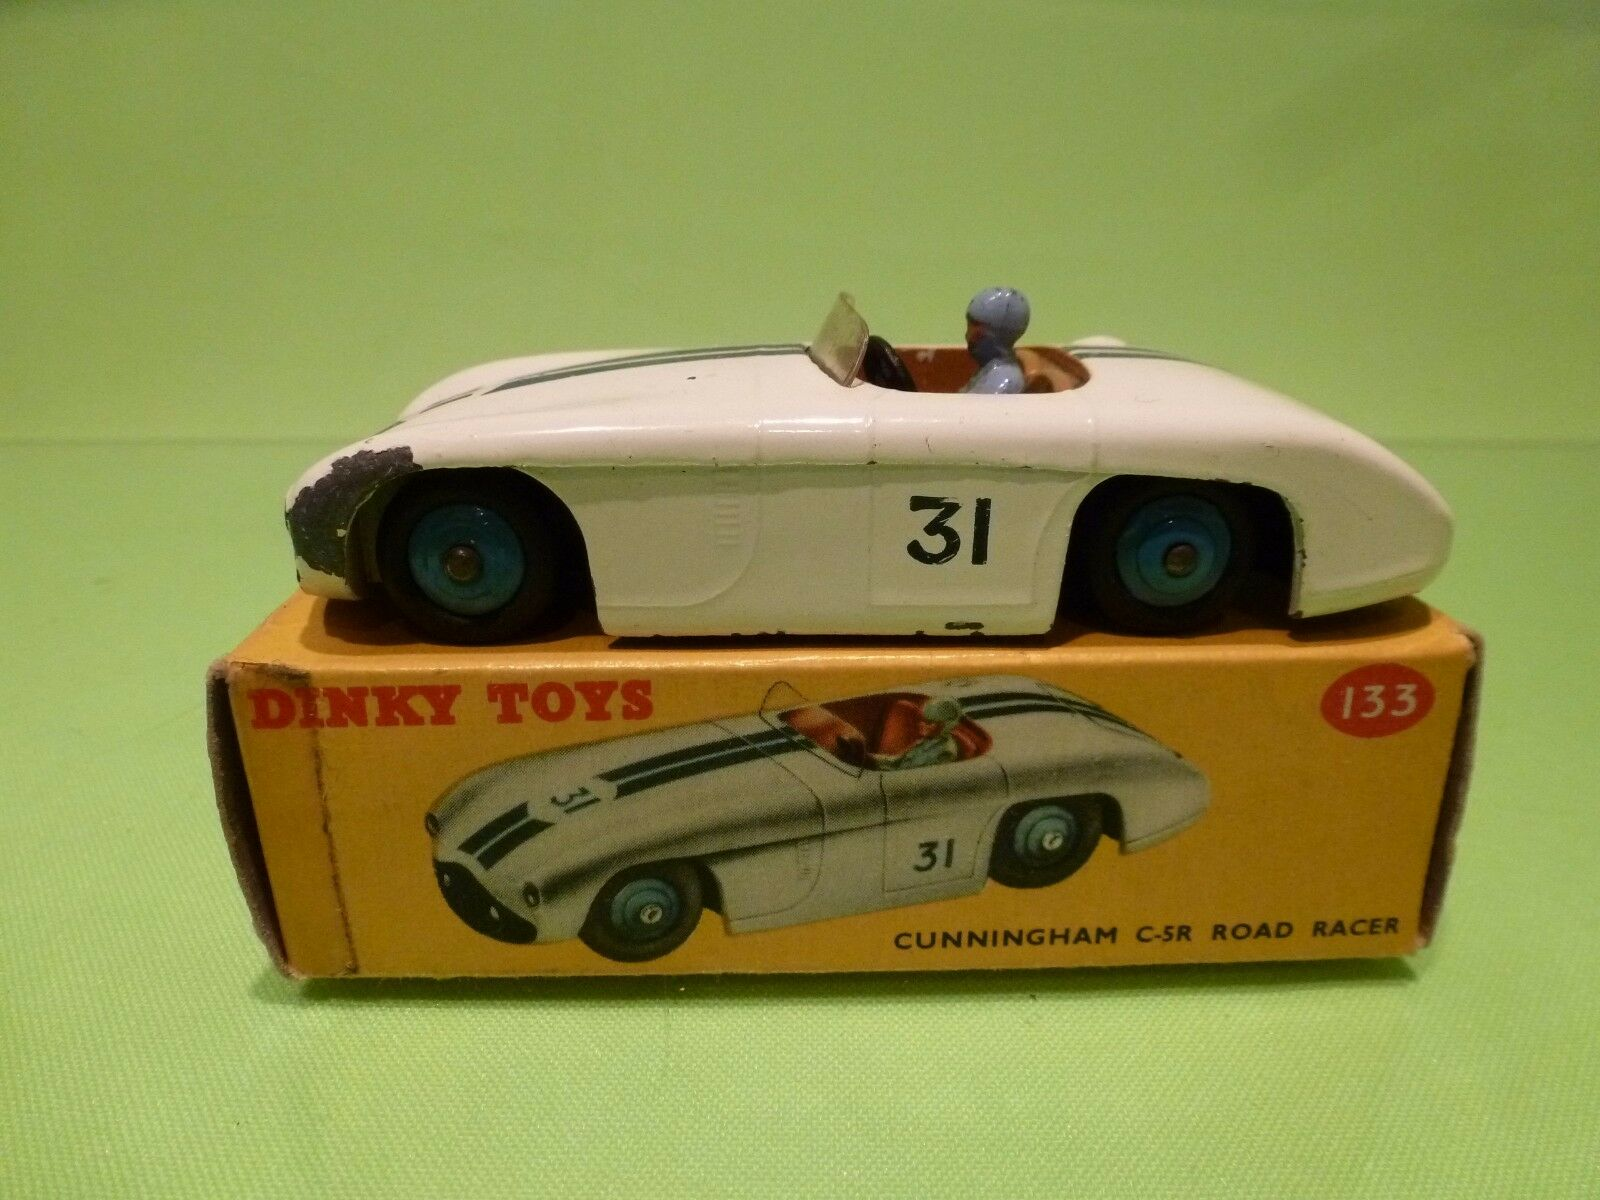 DINKY TOYS 133 CUNNINGHAM C-5R ROAD RACER - blanc - VERY GOOD CONDITION IN BOX